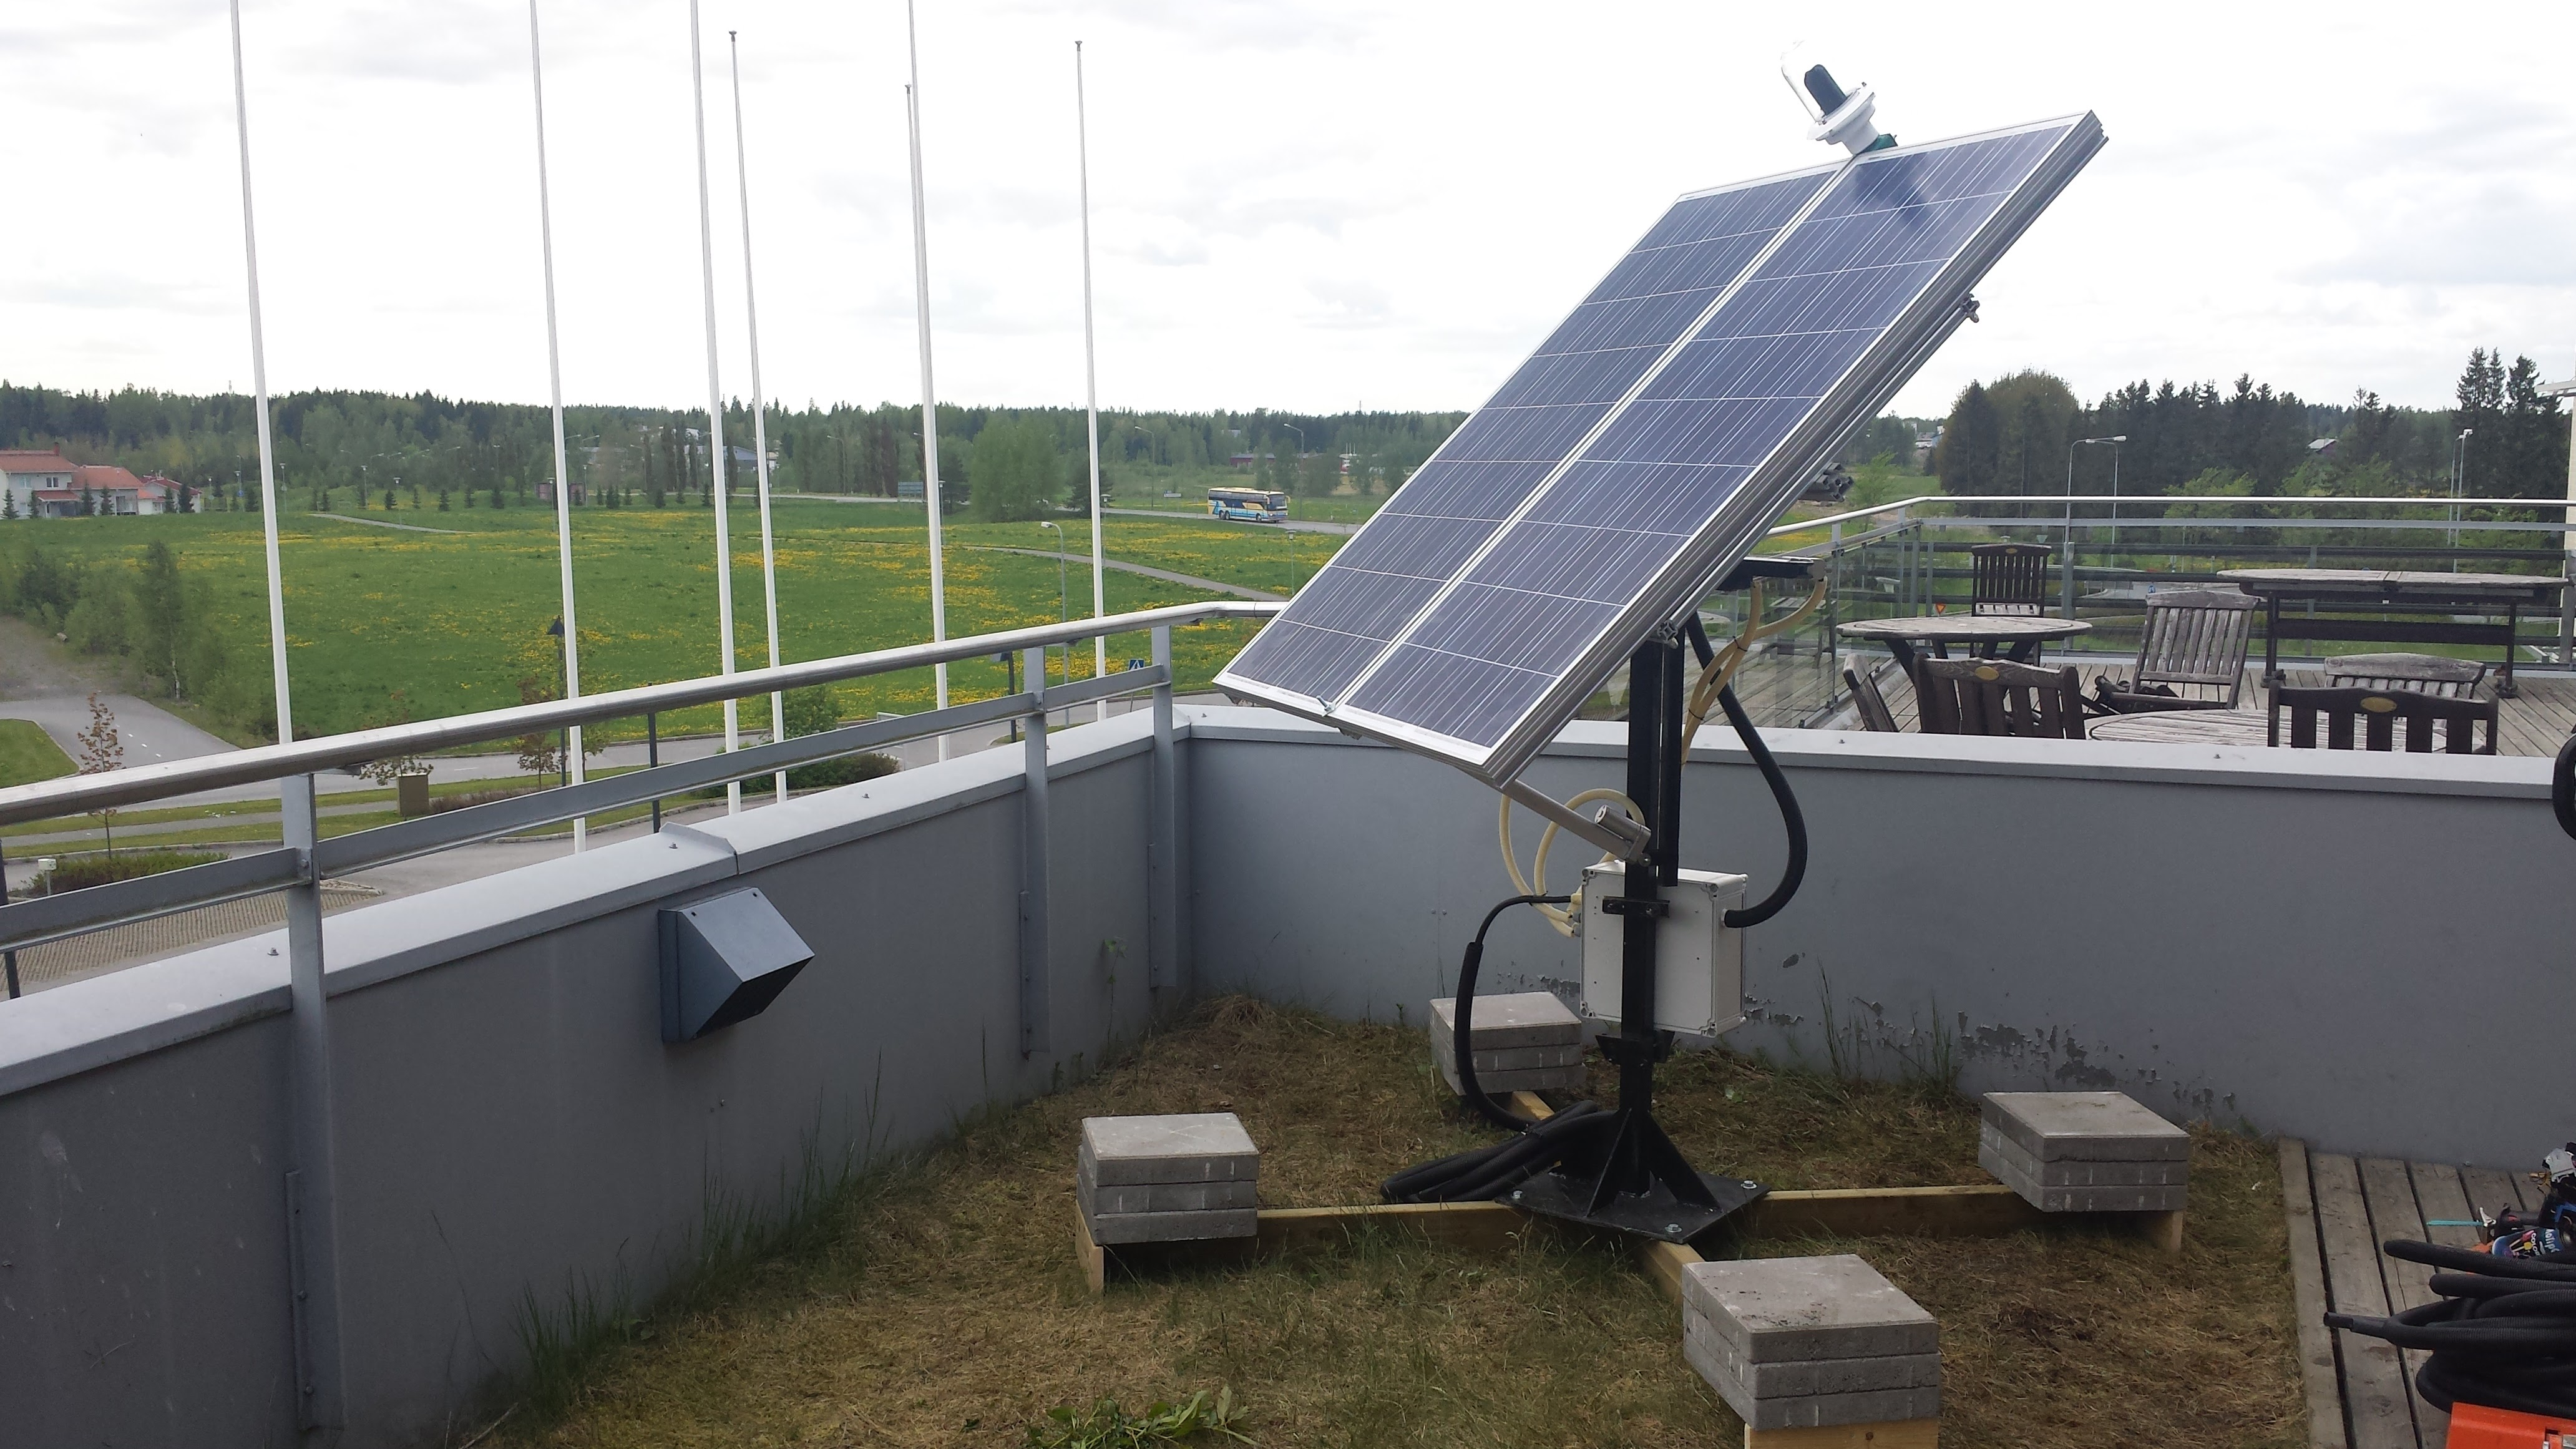 Pan/Tilt Solar Tracker Powered by #Arduino Mega Doubles as Online